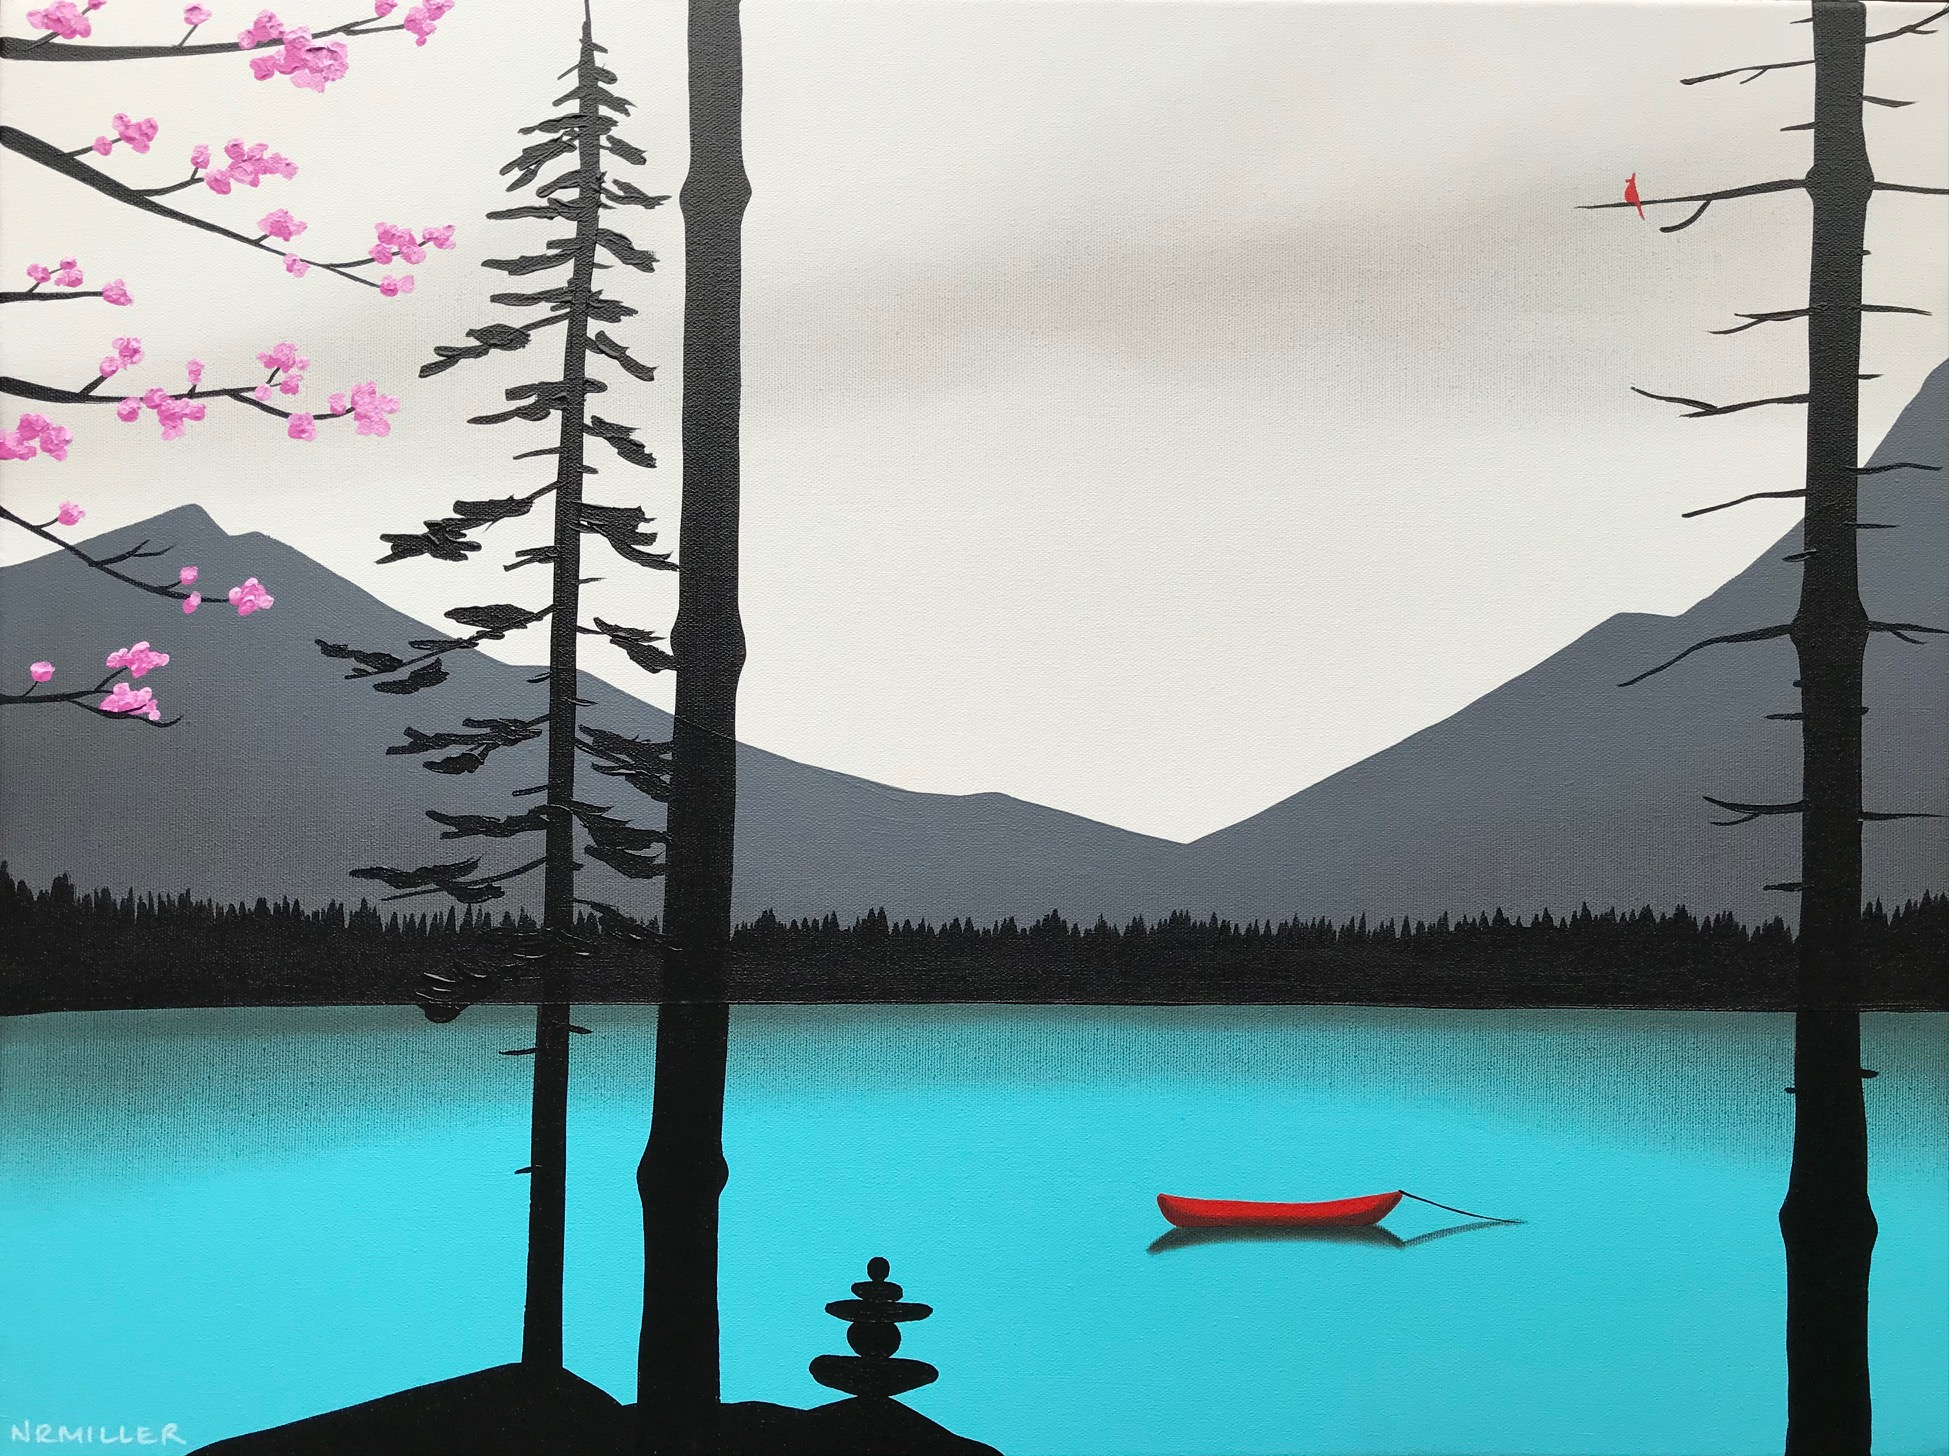 Meet in the Middle, mixed media landscape painting by Natasha Miller | Effusion Art Gallery + Cast Glass Studio, Invermere BC